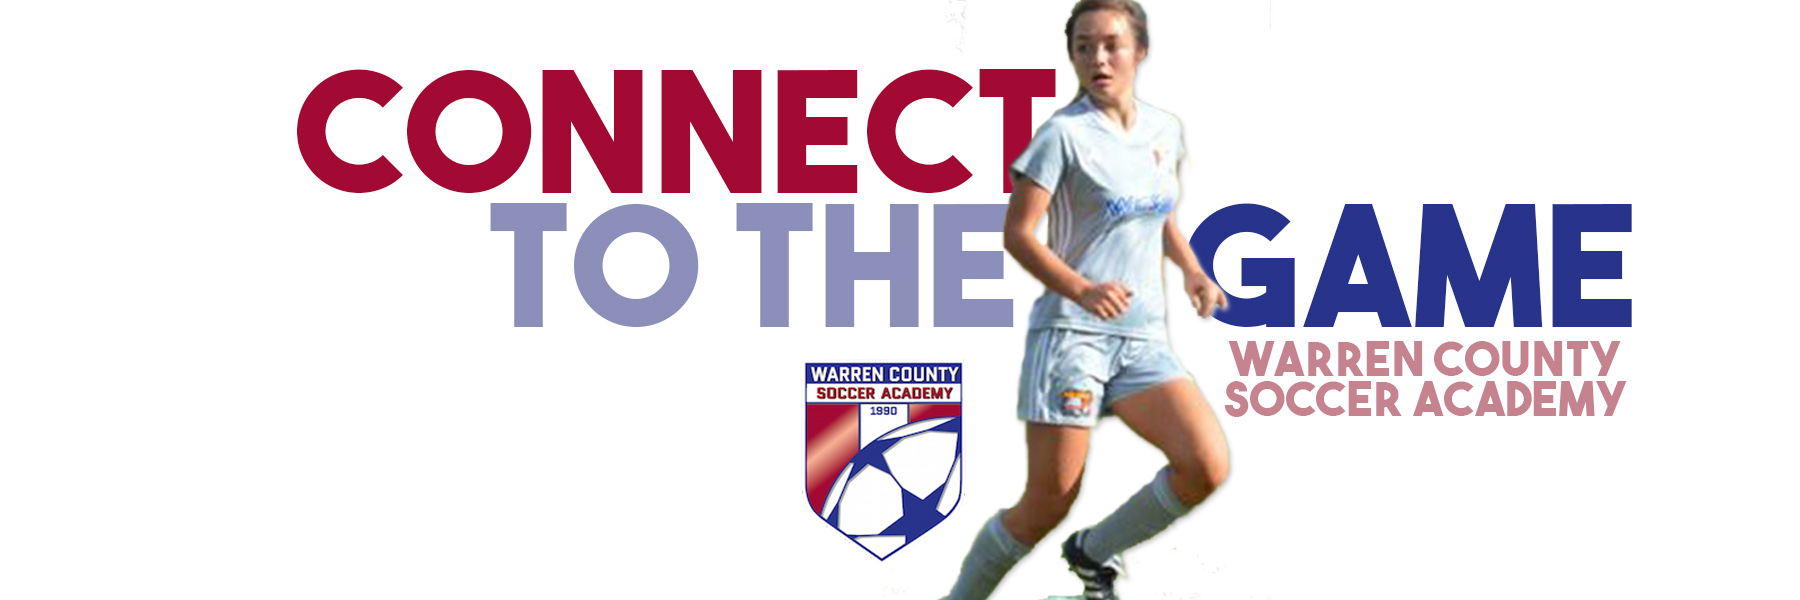 WCSA Fall HS Program, Connect to the Game, Warren County Soccer Academy